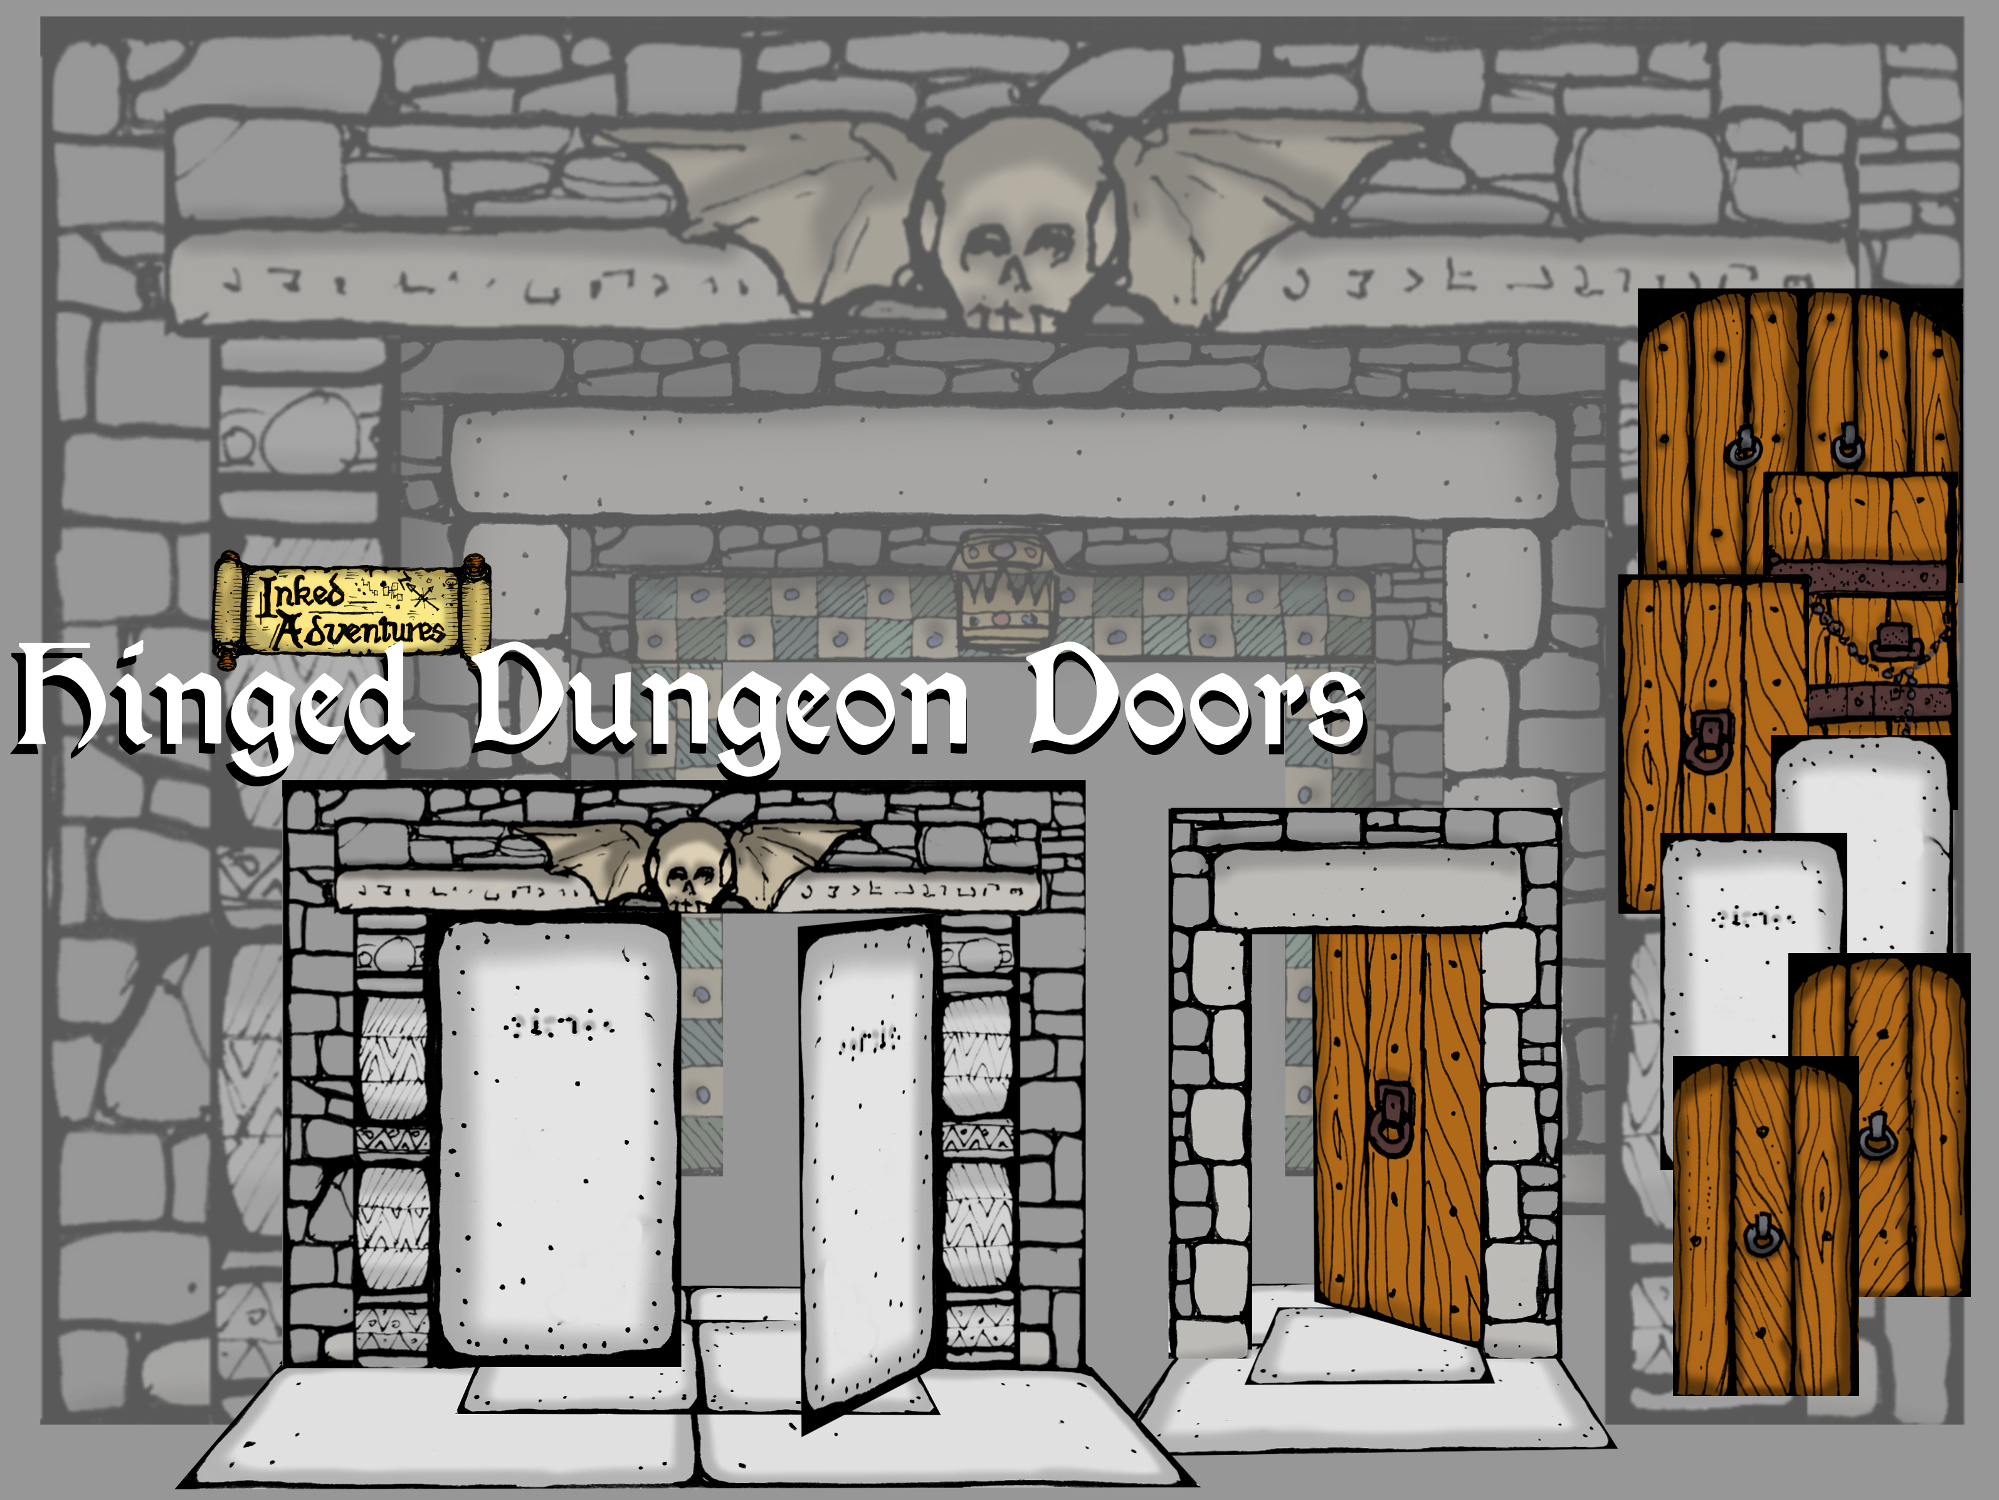 image about Printable Dungeon Tiles Pdf titled Hinged Dungeon Doorways - Inked Adventures